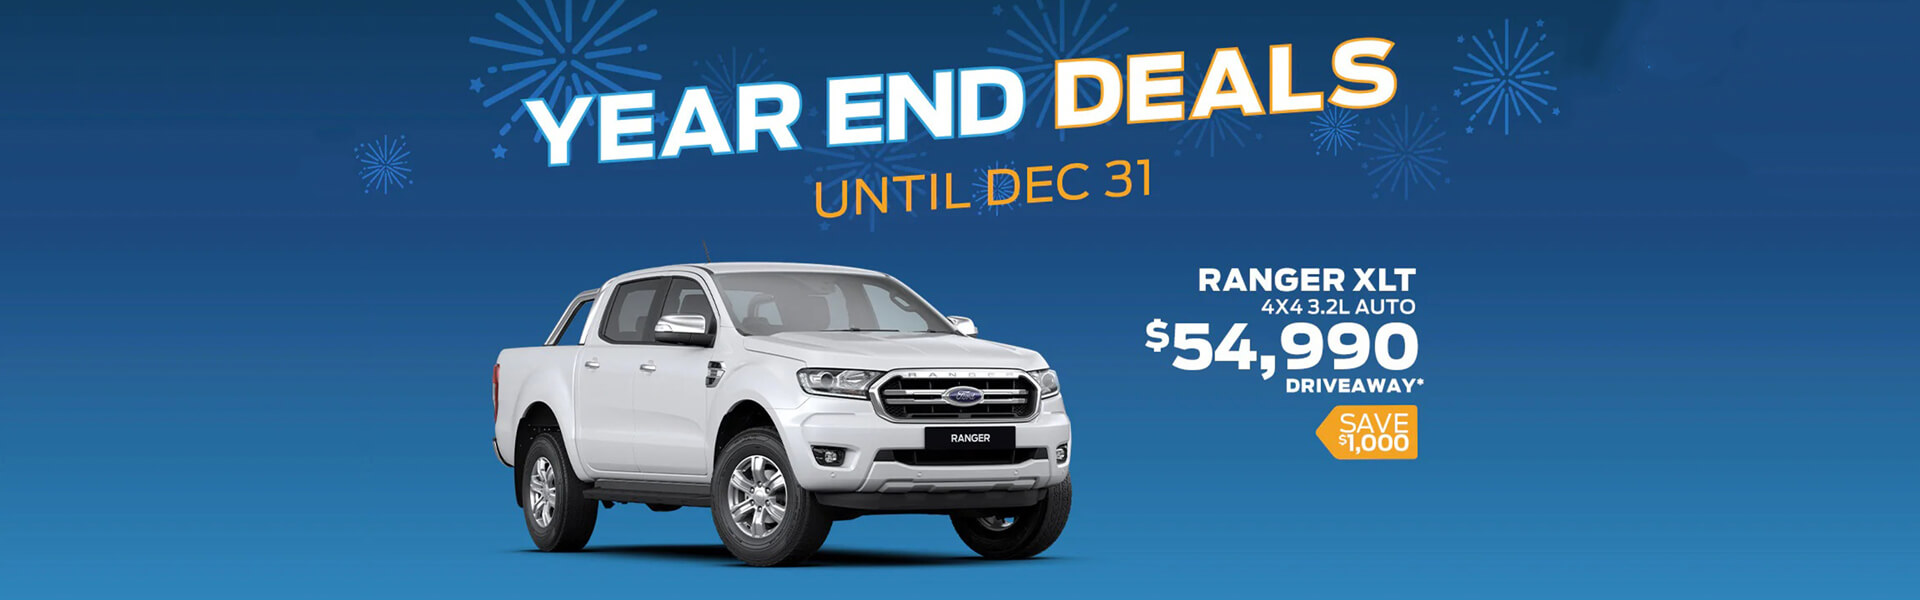 Ford Year end deals